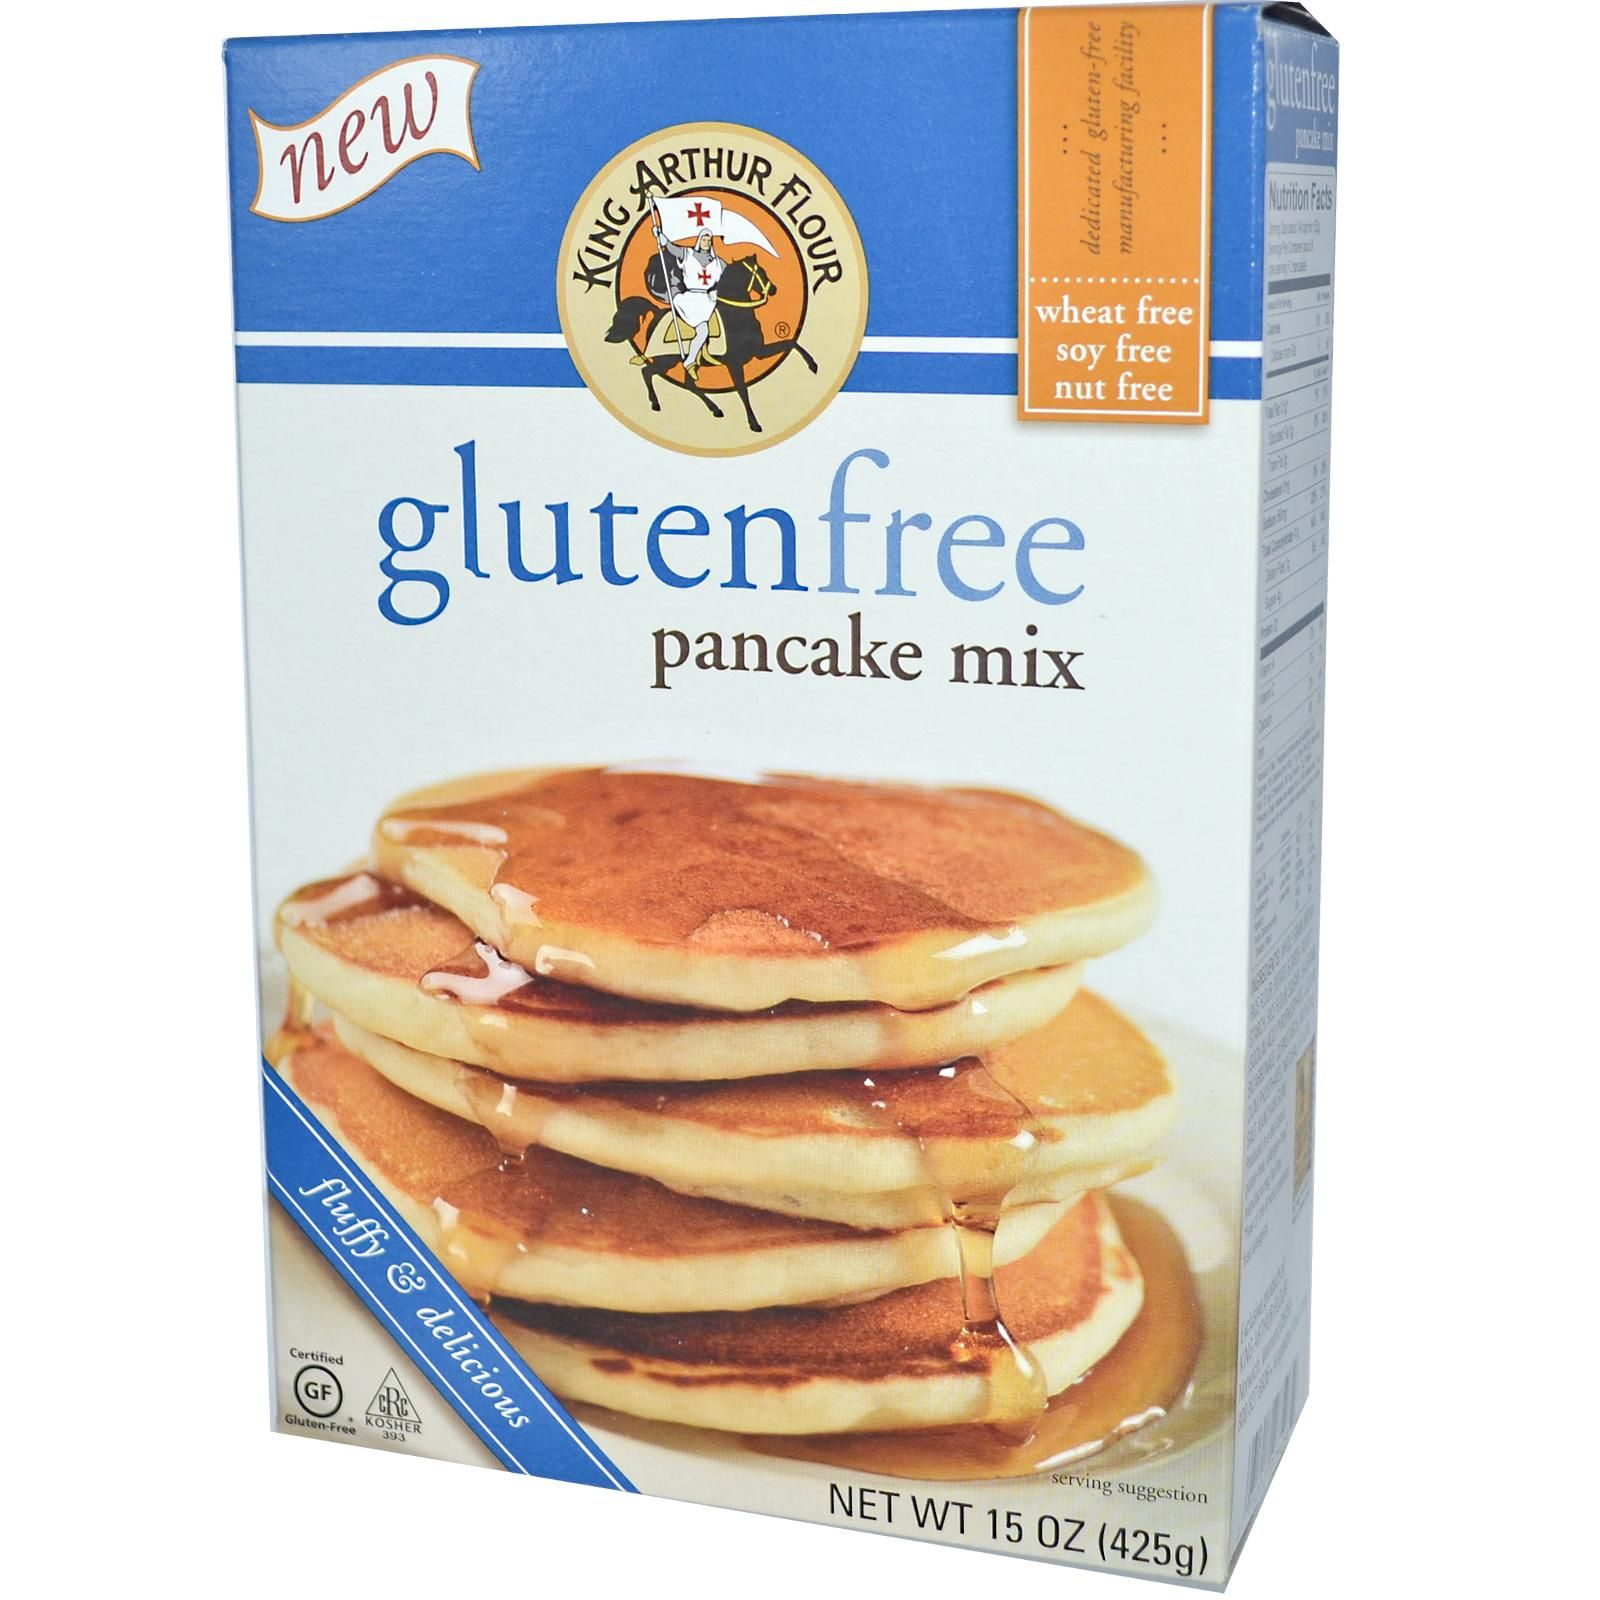 King arthur flour gluten free pancake mix 15 oz 425 g king king arthur flour gluten free pancake mix 15 oz 425 goo good just made these for breakfast ccuart Image collections